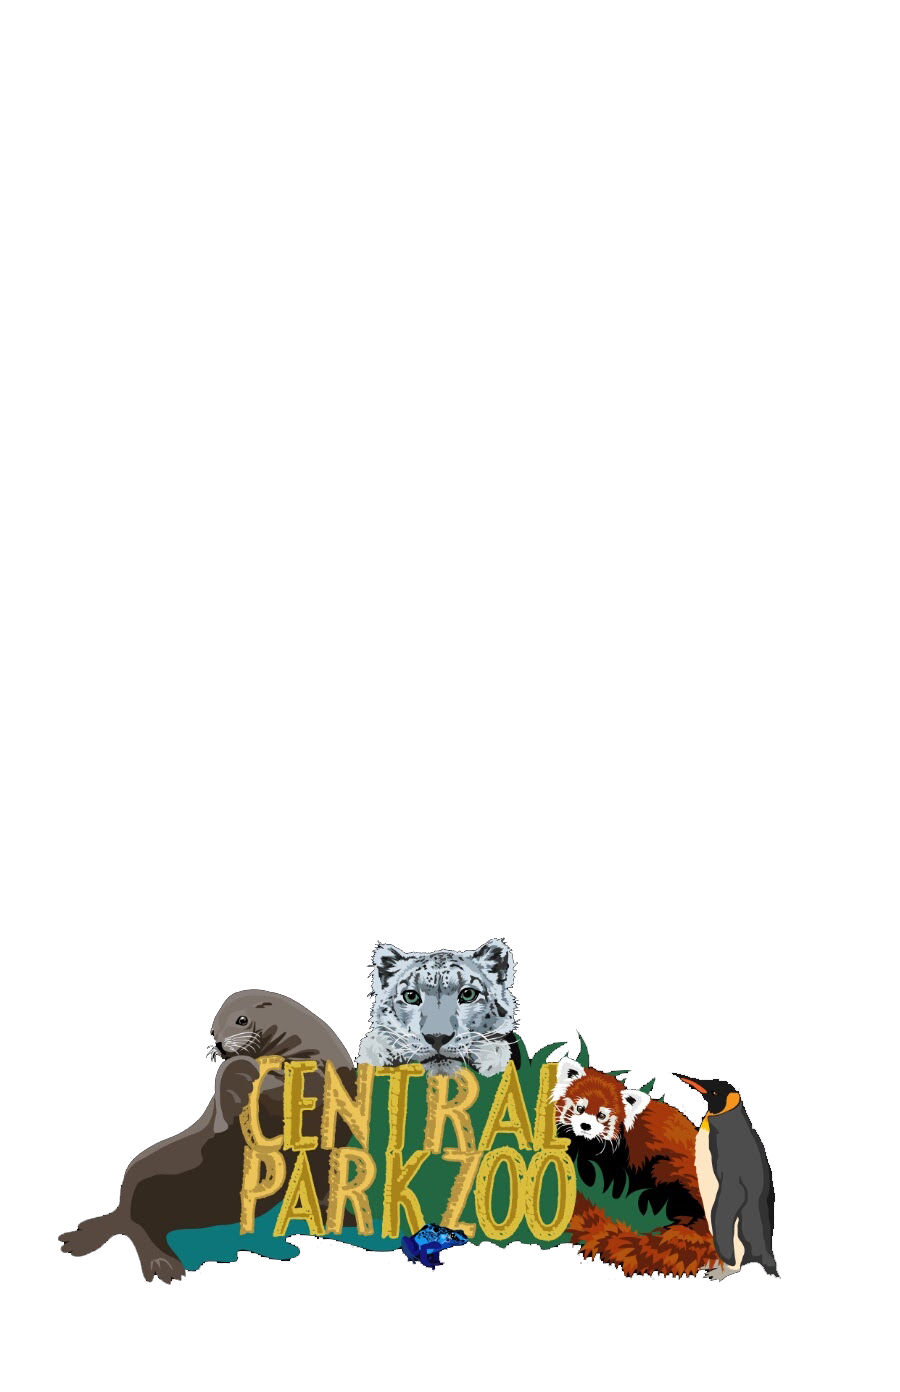 Central zoo snapchat geofilter. Park clipart parke